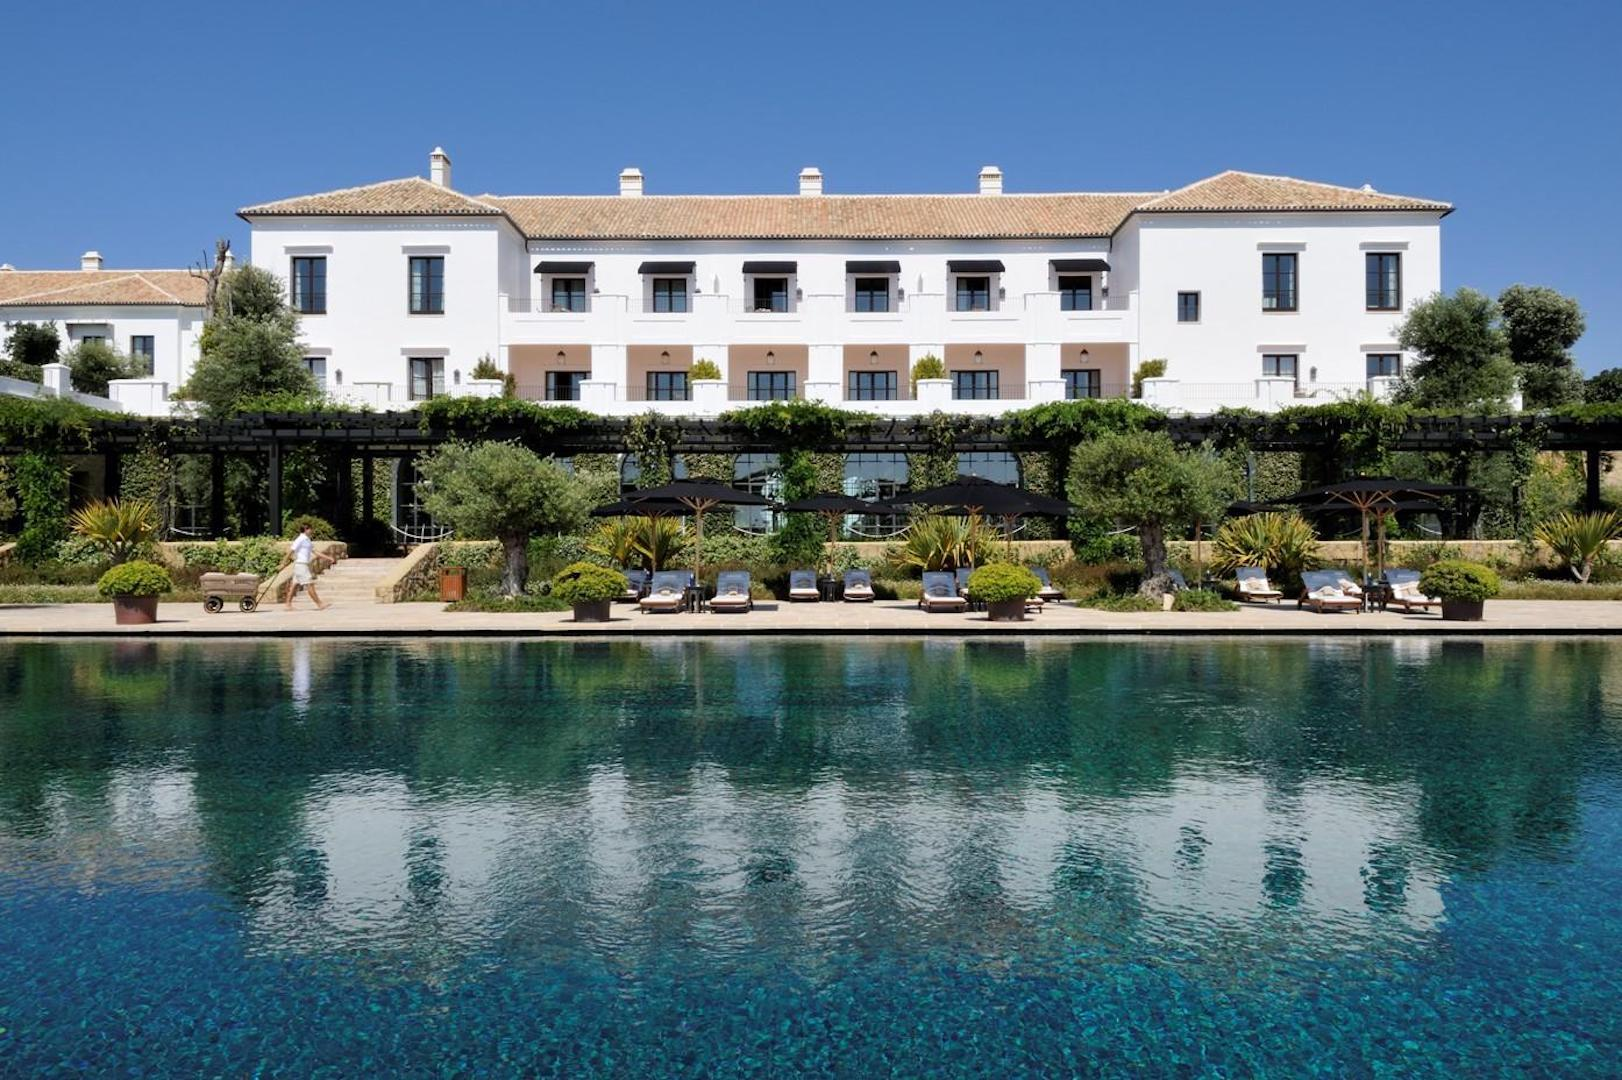 Finca Cortesin tops list for customer service